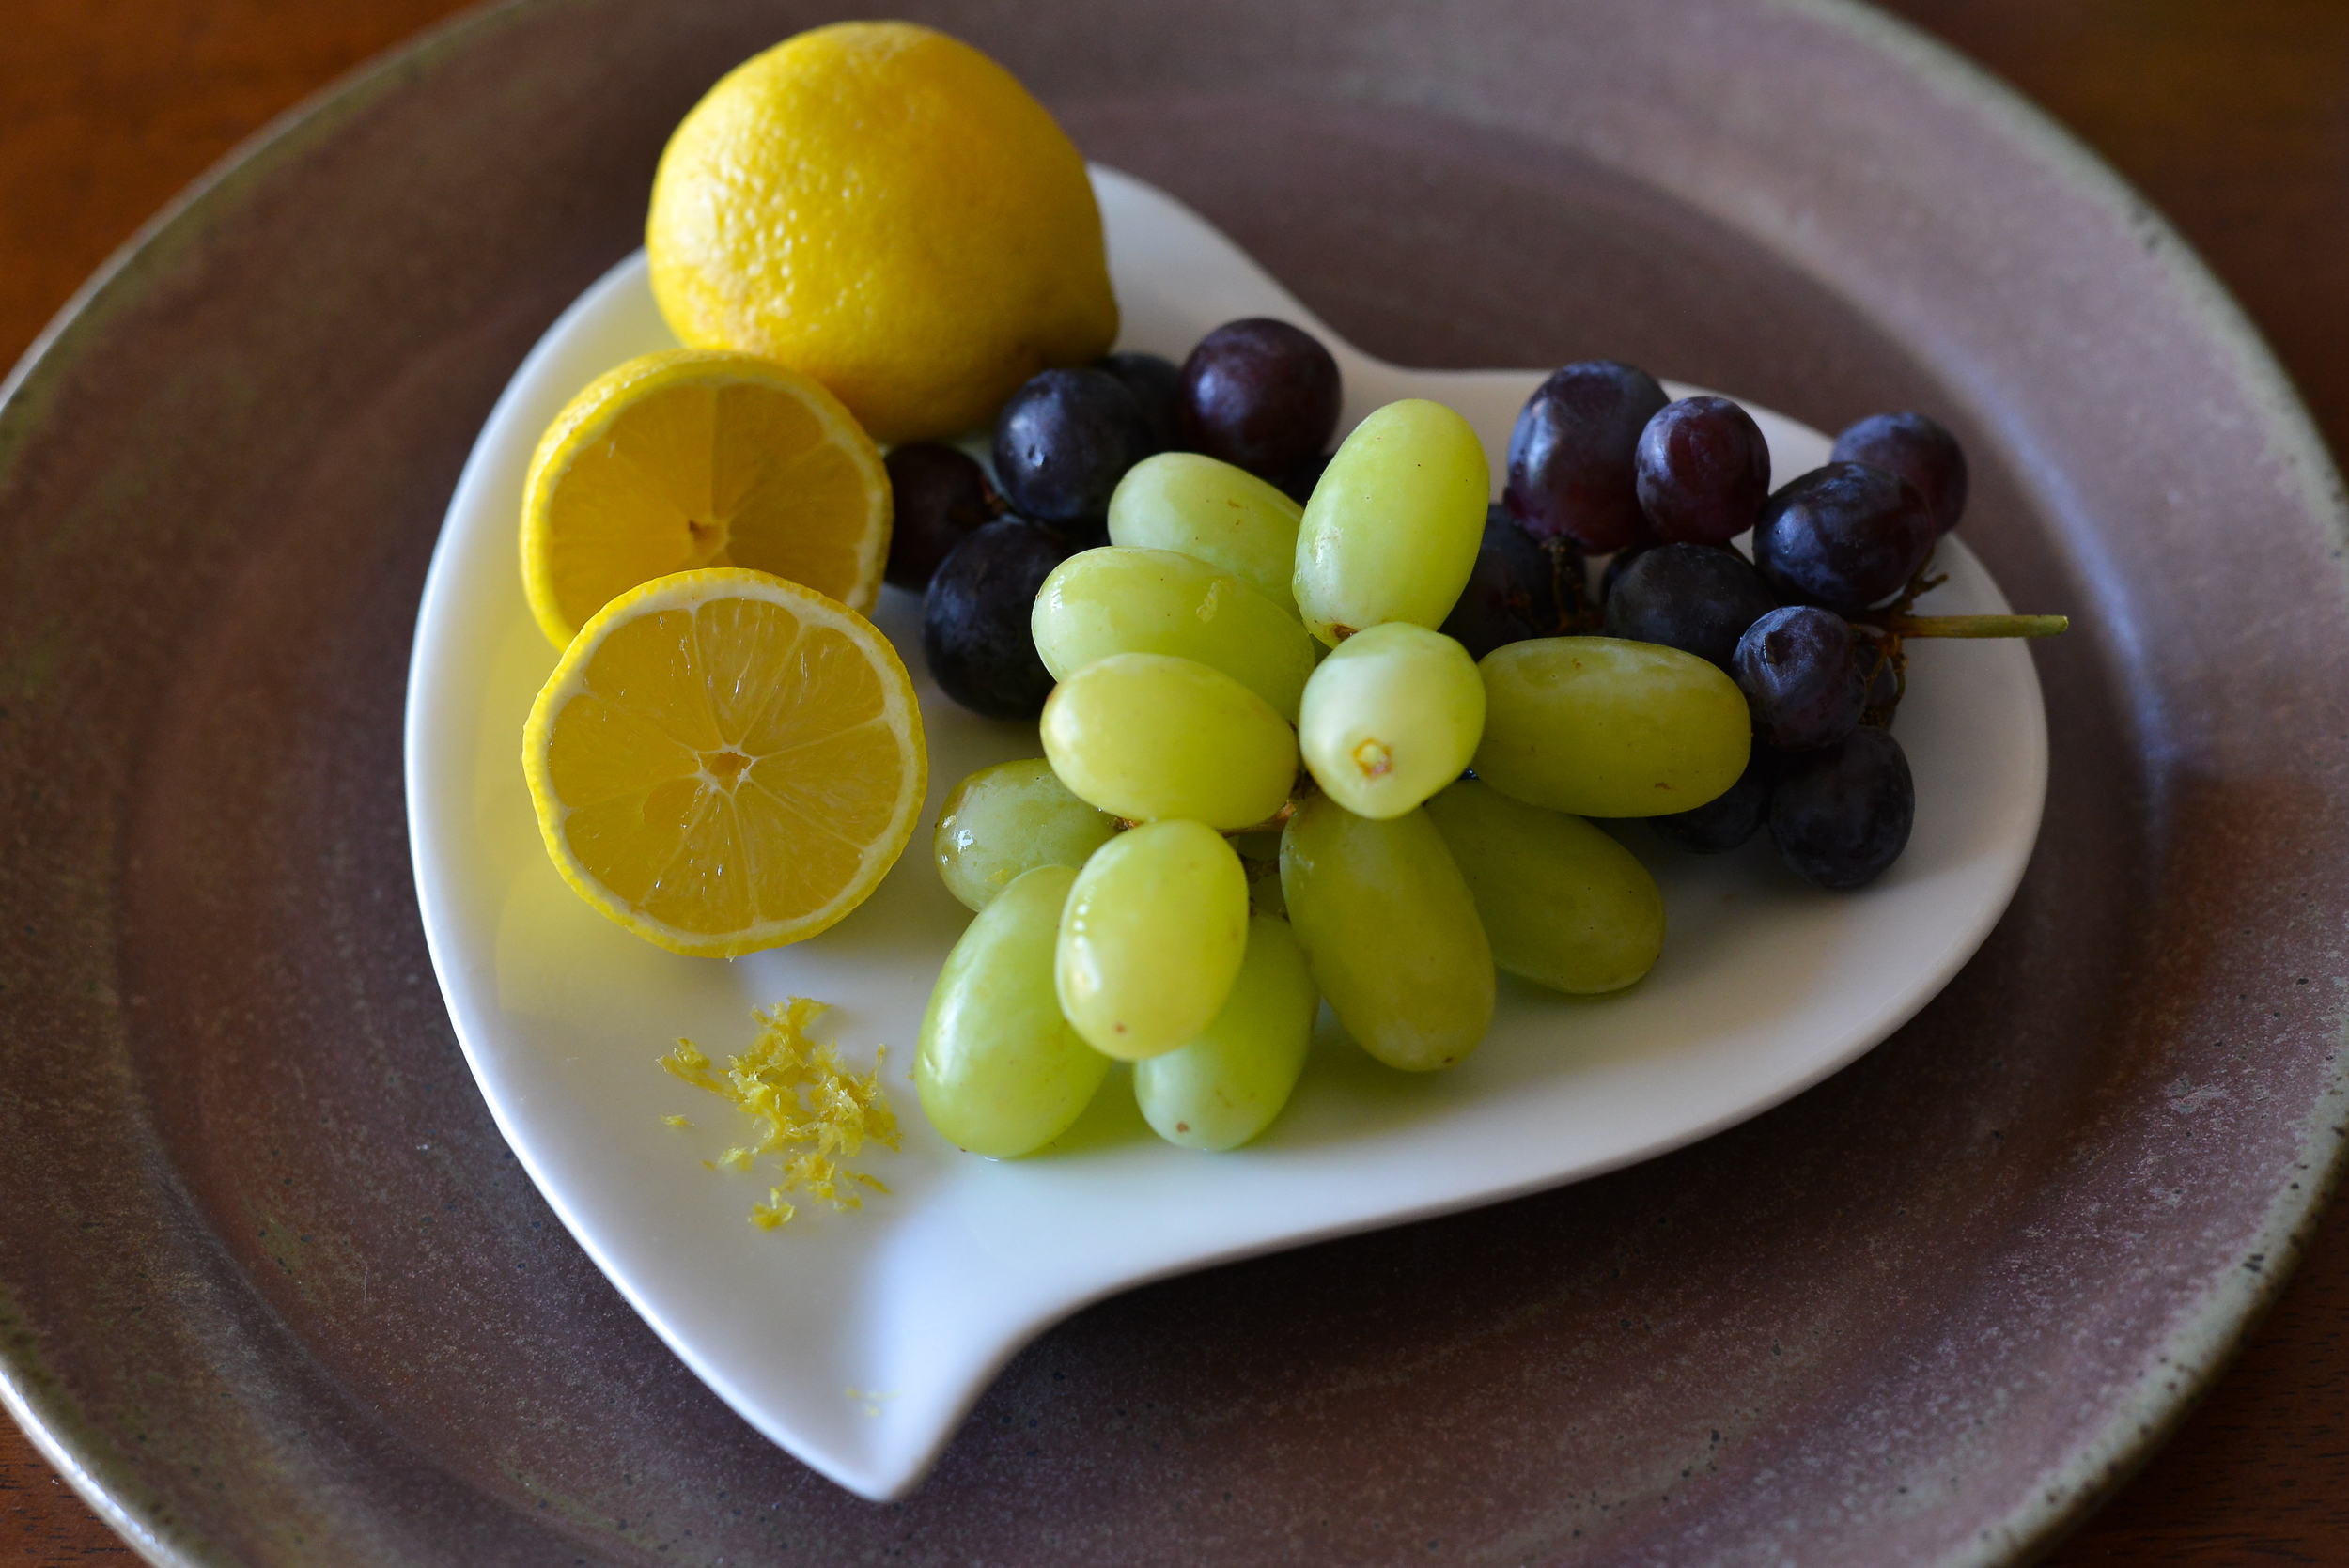 Beautiful and colorful whole food ingredients make a naturally sweet treat for all!